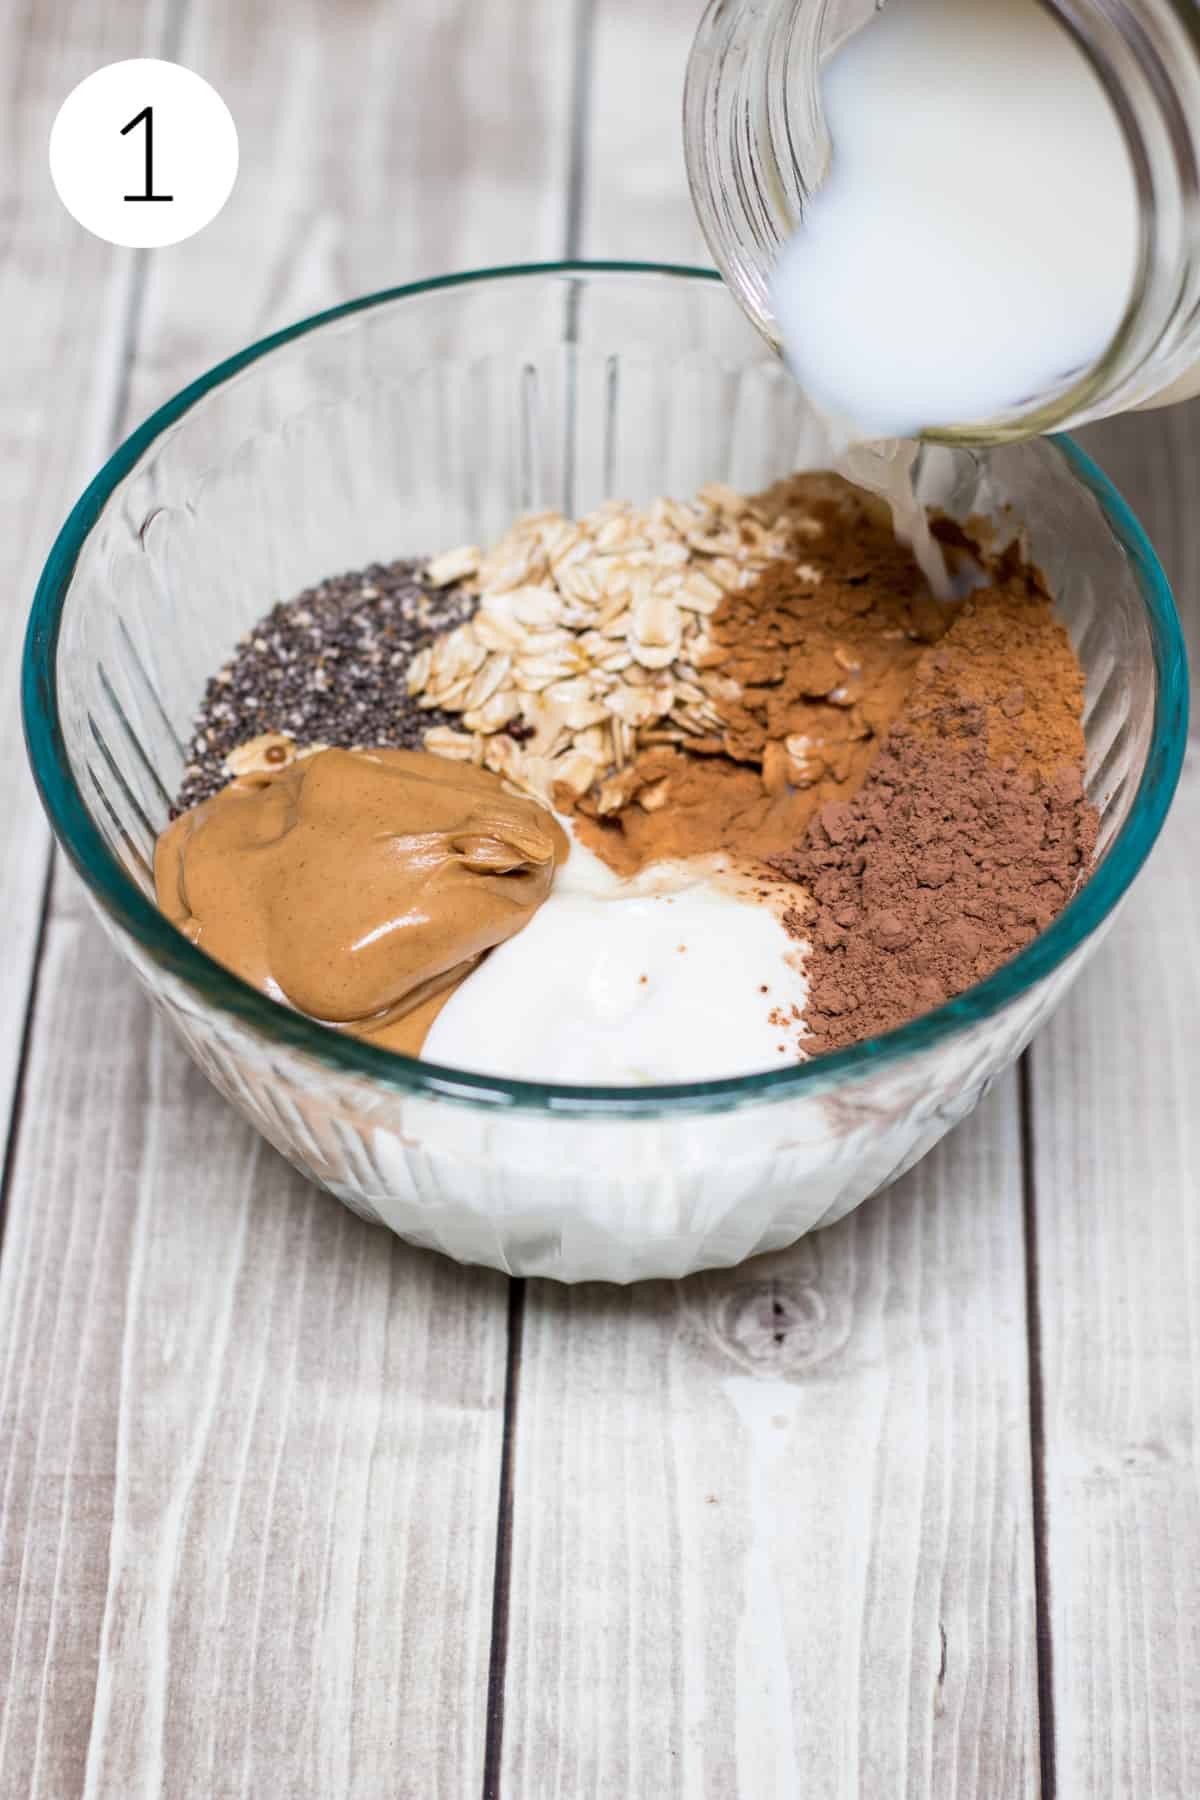 Glass bowl with oats, cocoa, chia seeds, cinnamon and peanut butter with milk being poured in.